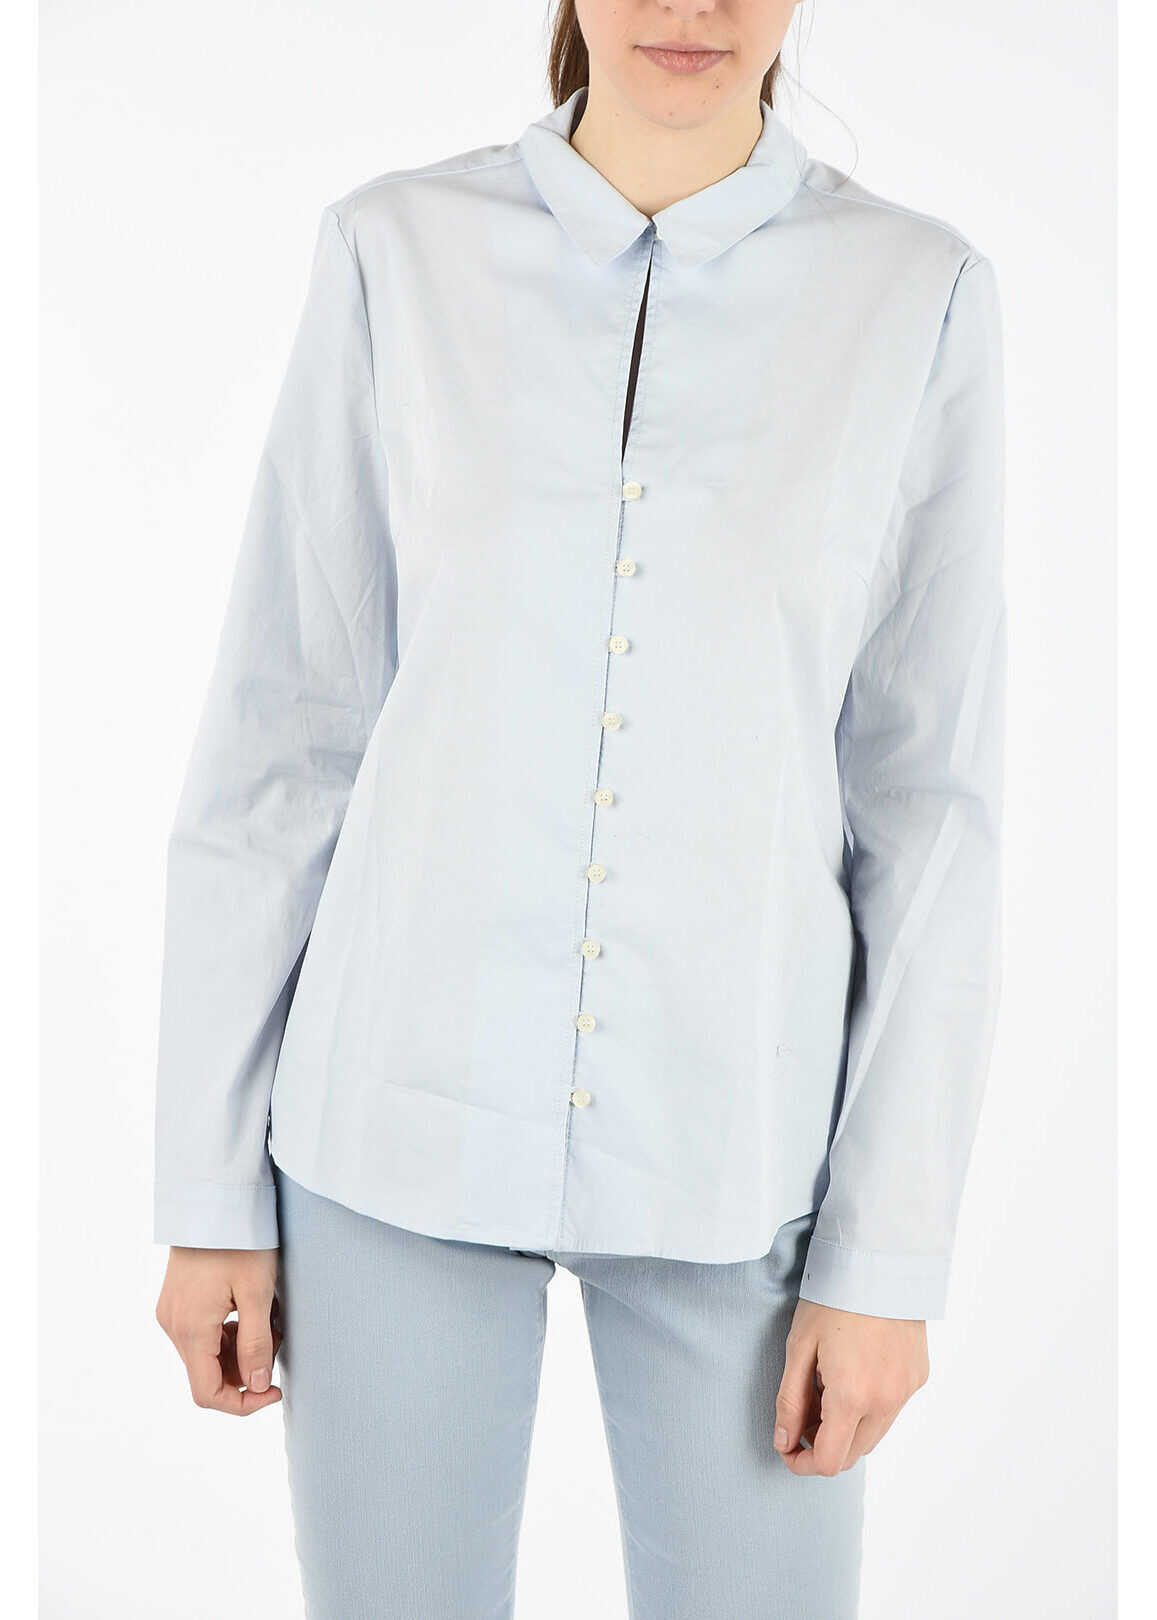 Armani ARMANI JEANS Stretch Cotton Blouse LIGHT BLUE